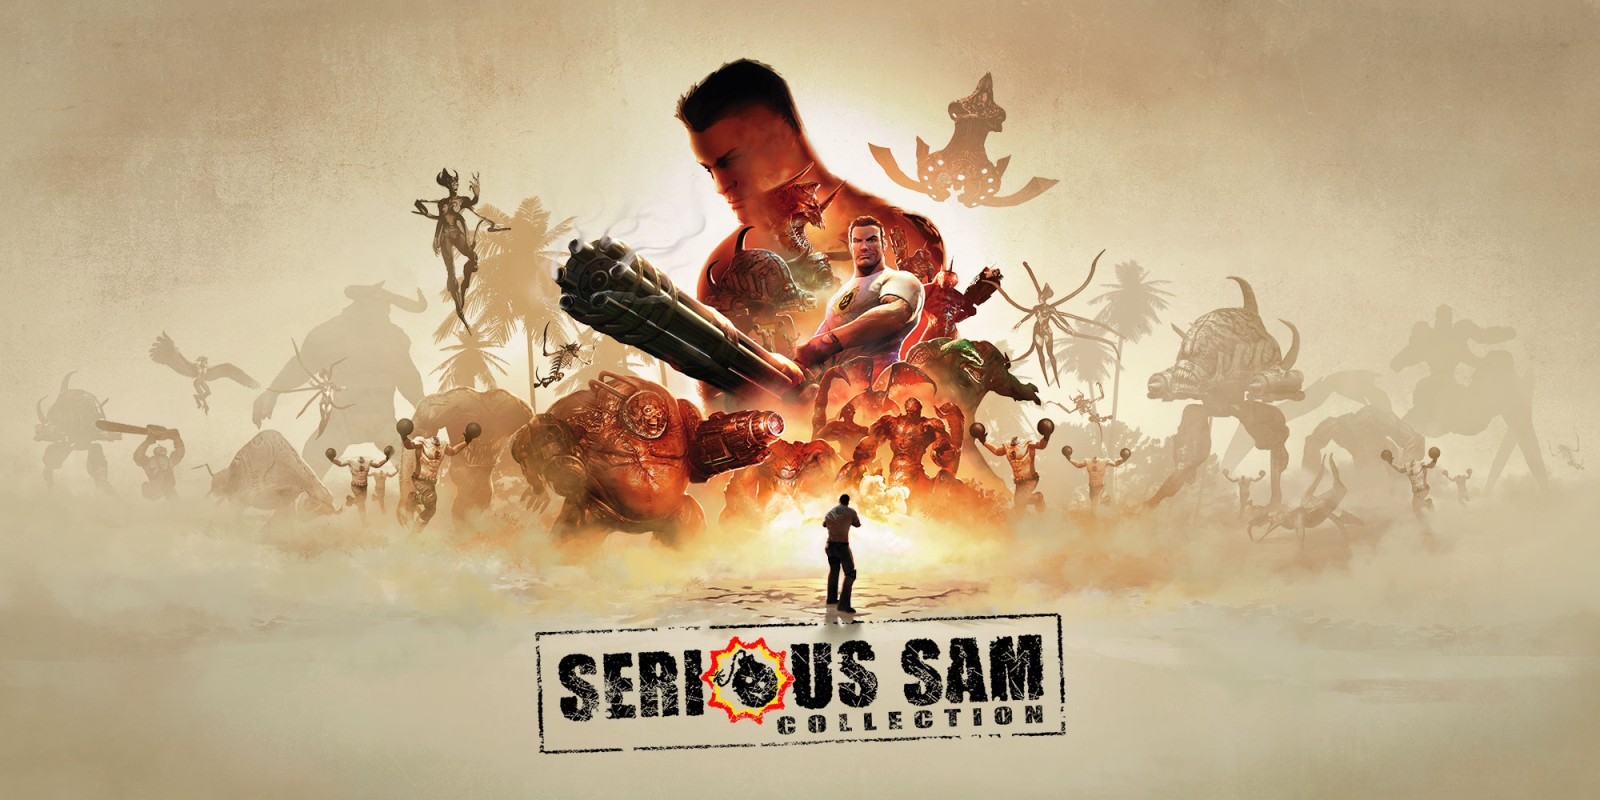 Serious Sam Collection se příští týden podívá na Nintendo Switch